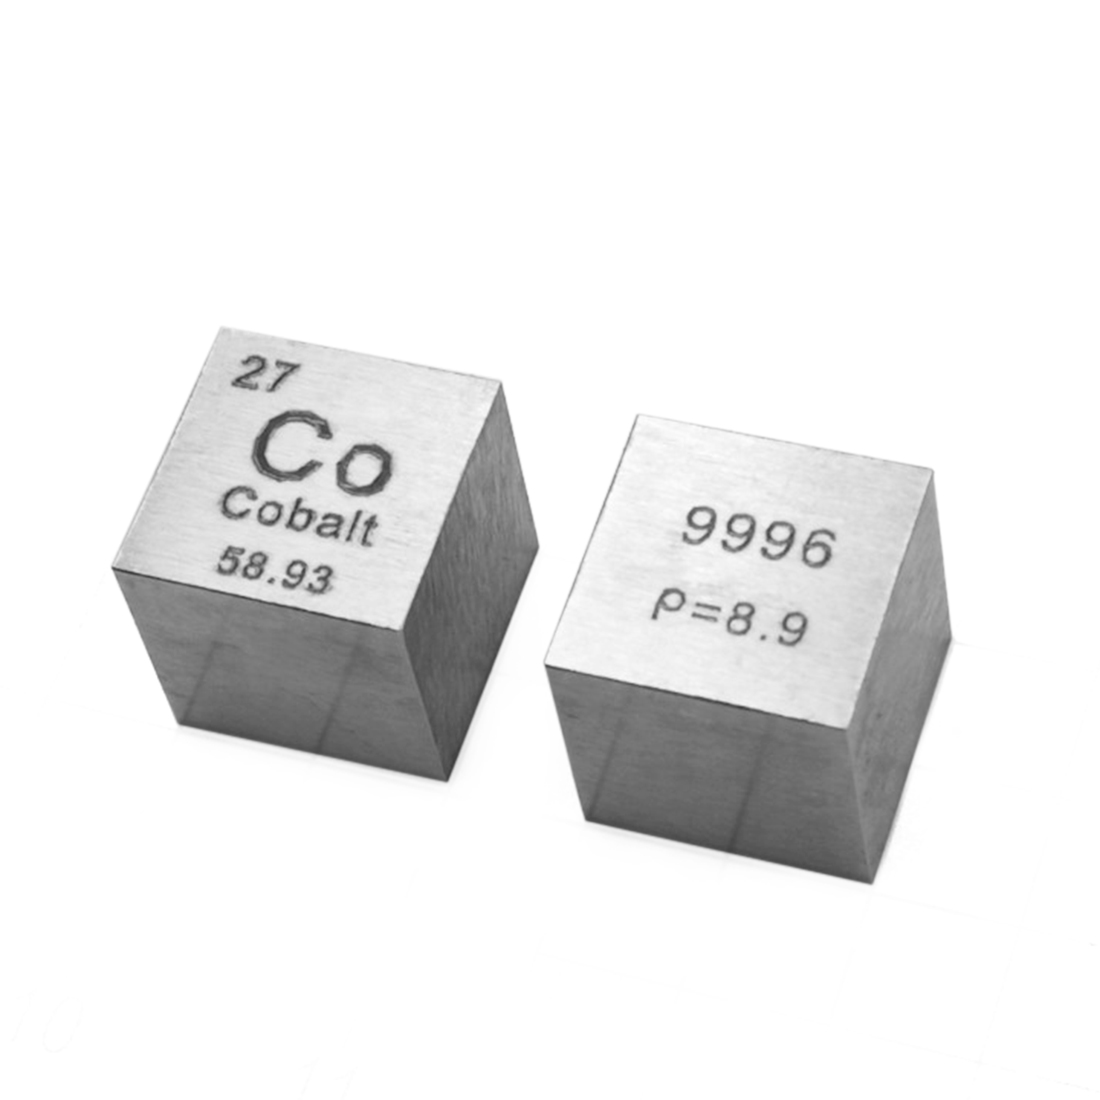 High Pure 10 X 10 X 10mm Wiredrawing Cobalt Cube Periodic Table Of Elements Cube For Lab Education Collection(Co≥99.96%)